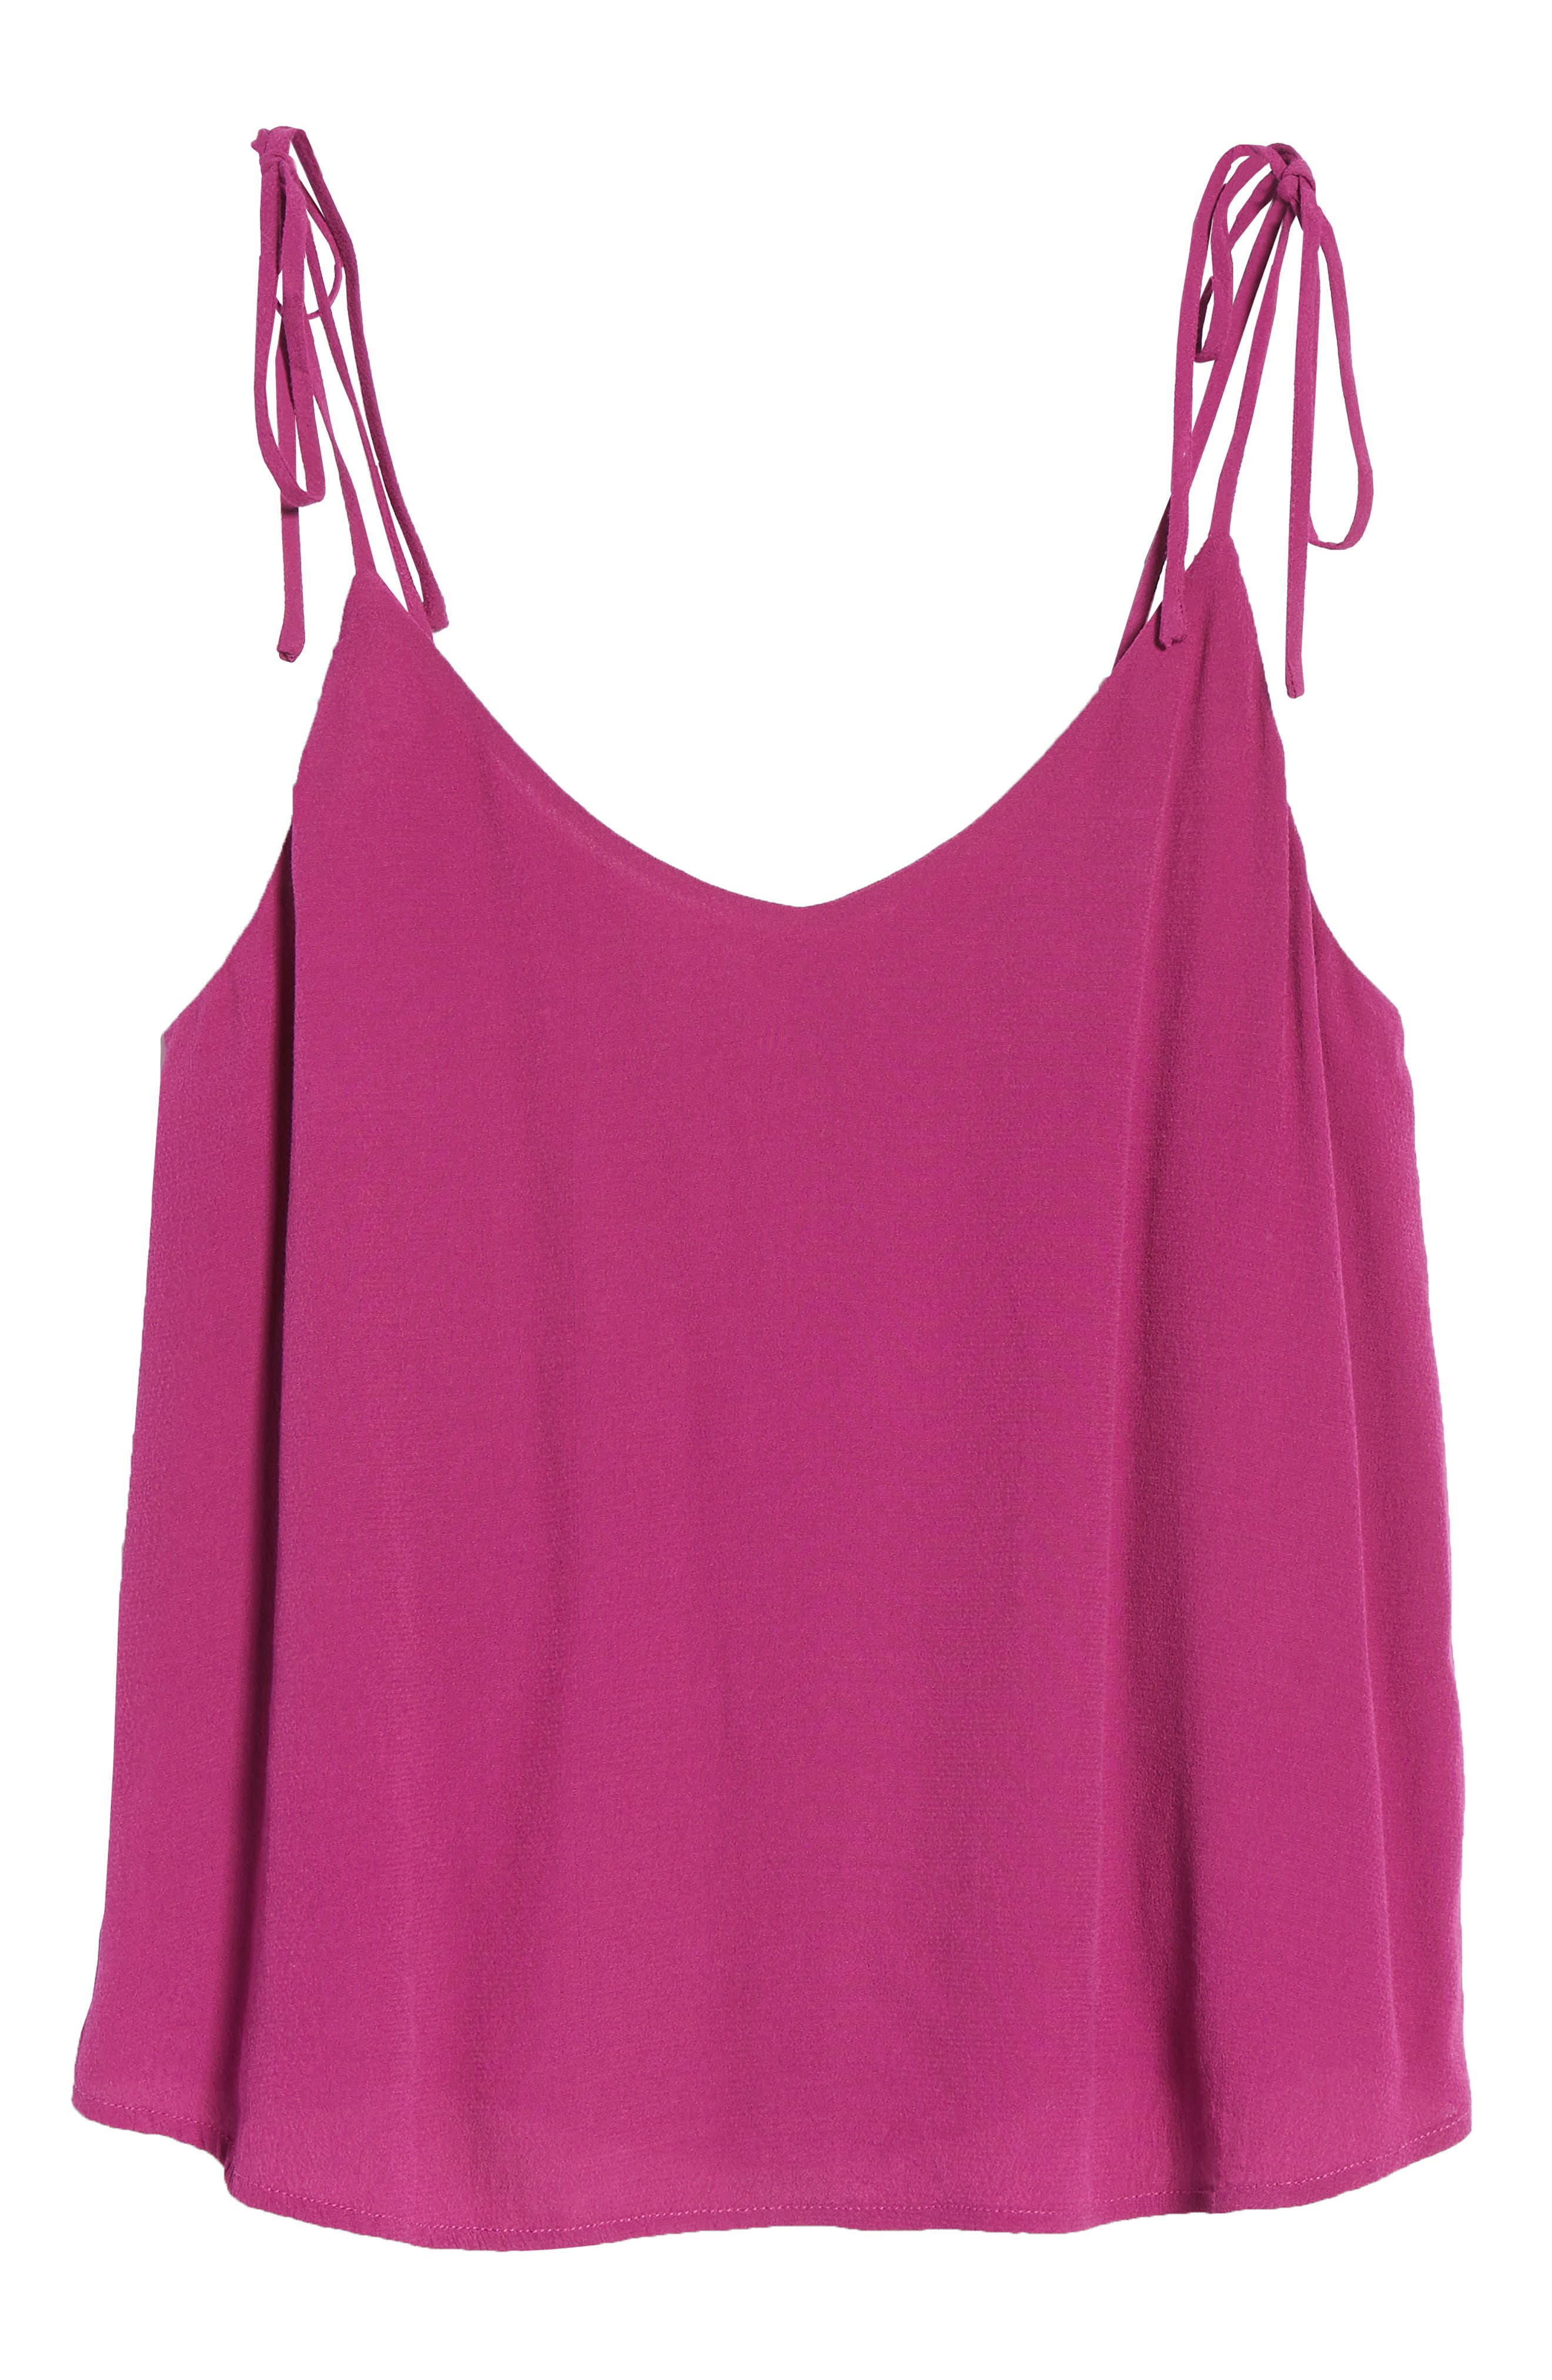 Camisole,                             Alternate thumbnail 7, color,                             500